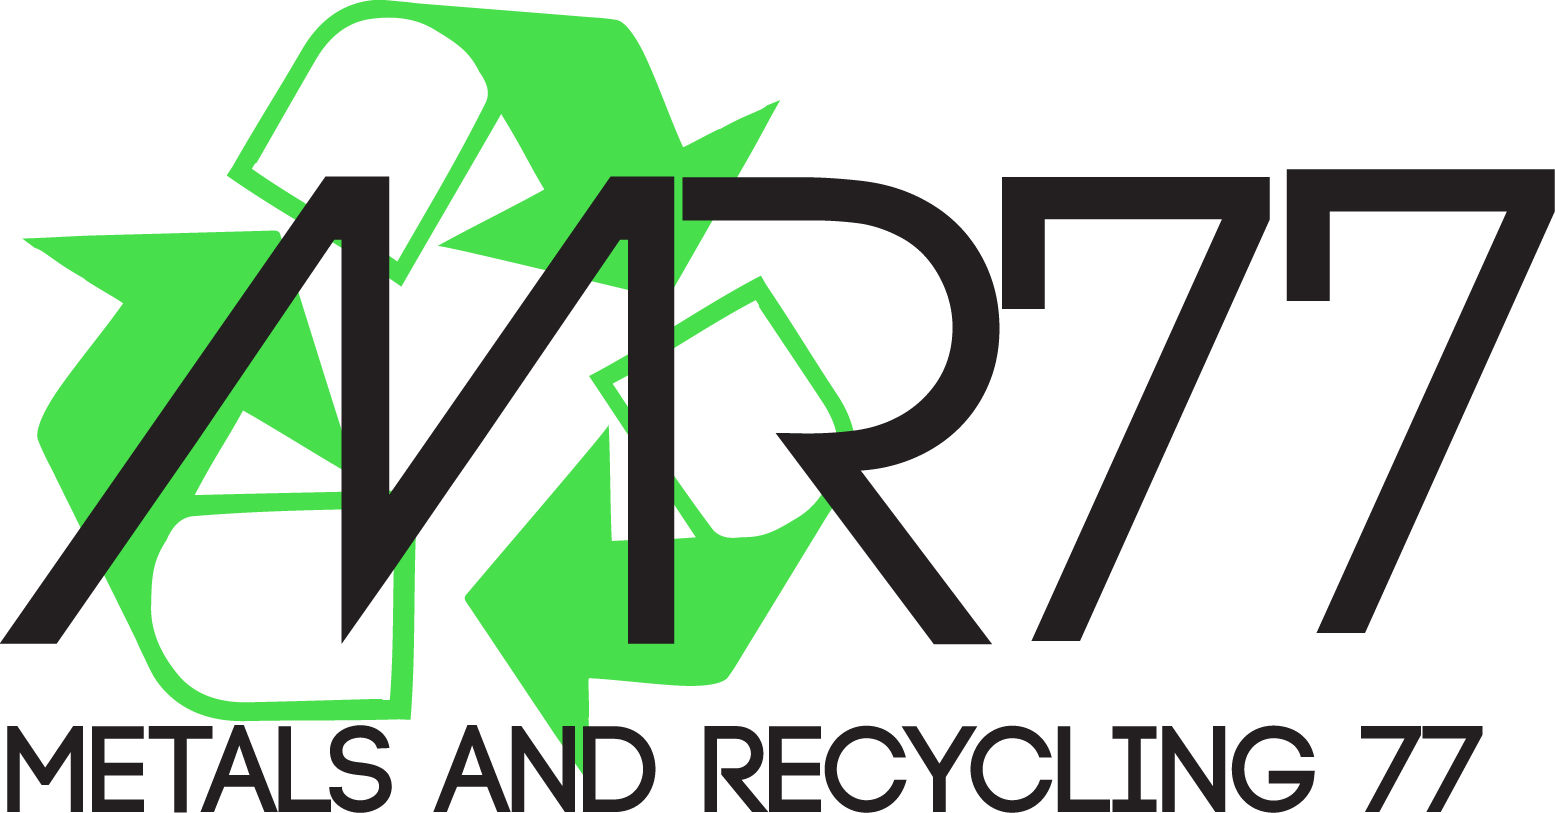 Metals and Recycling 77